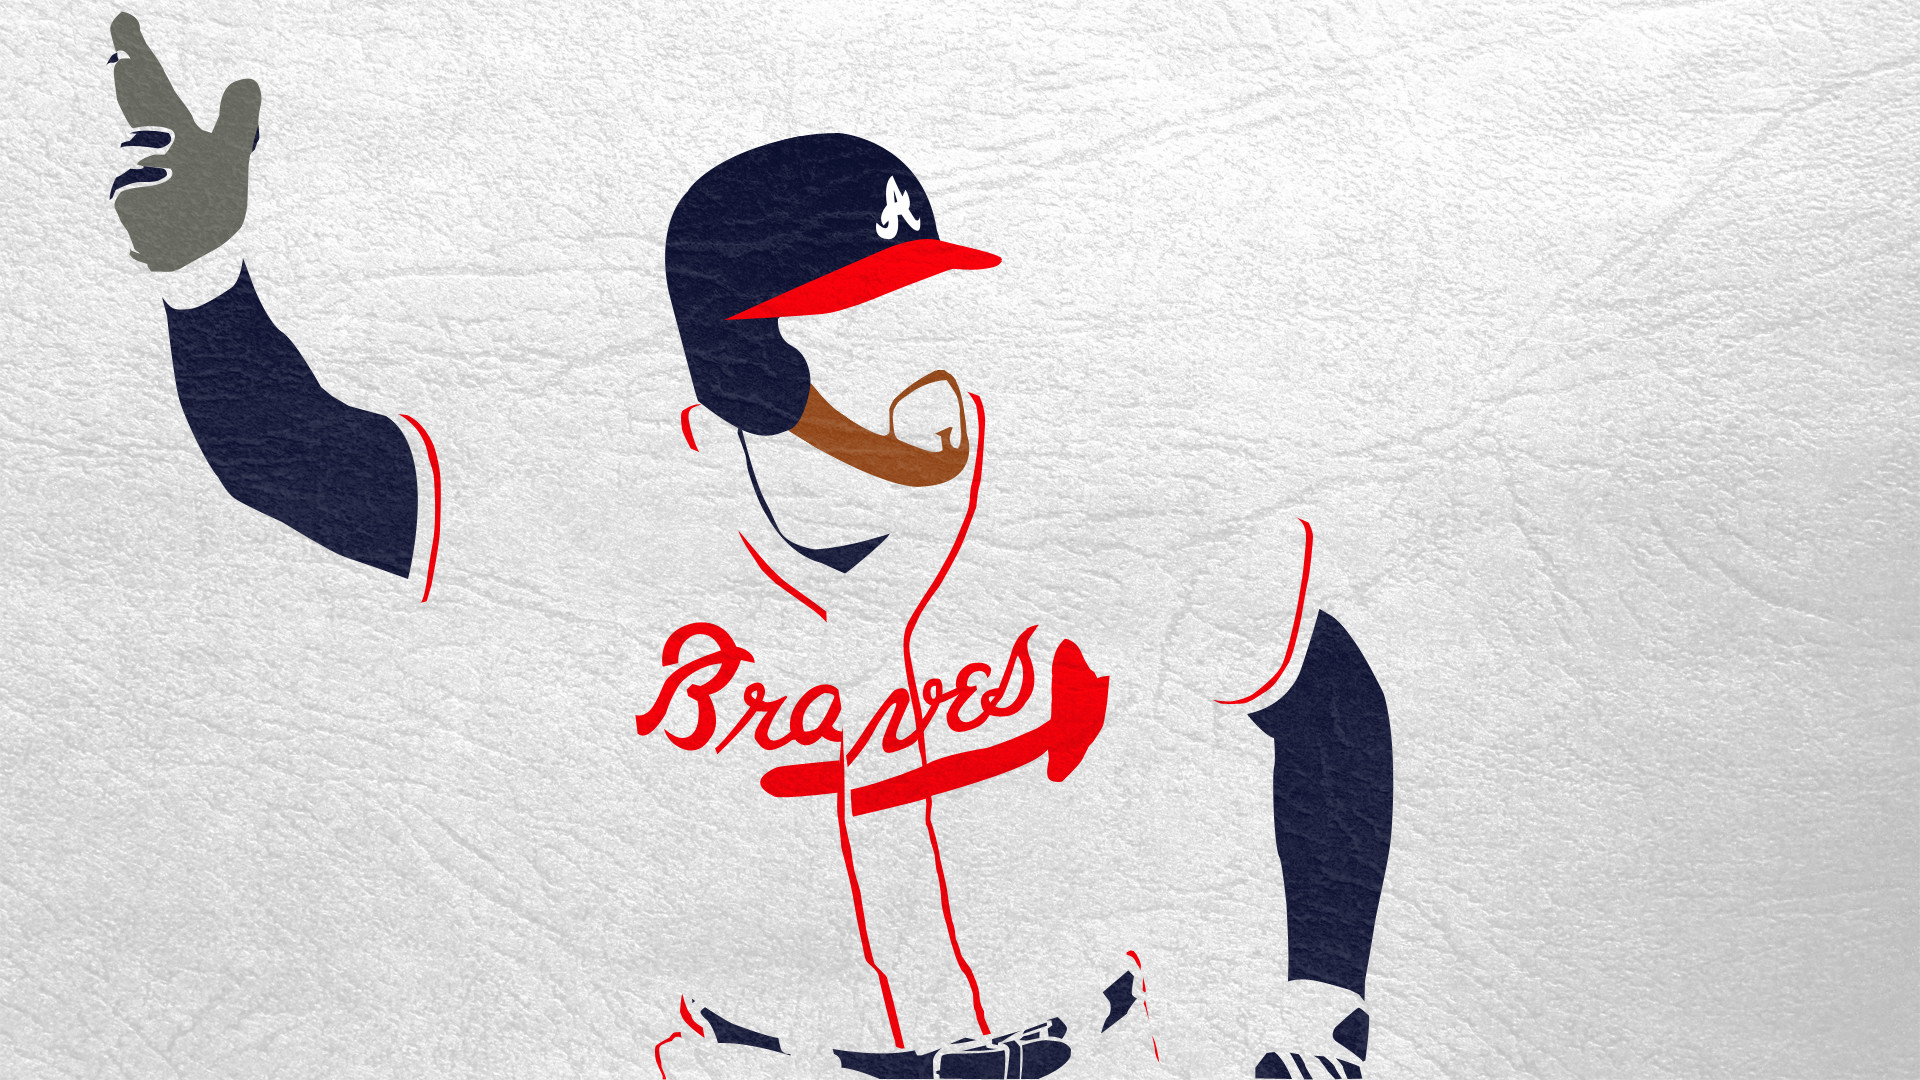 Download Atlanta Braves HD Wallpapers for Free | NMgnCP.com